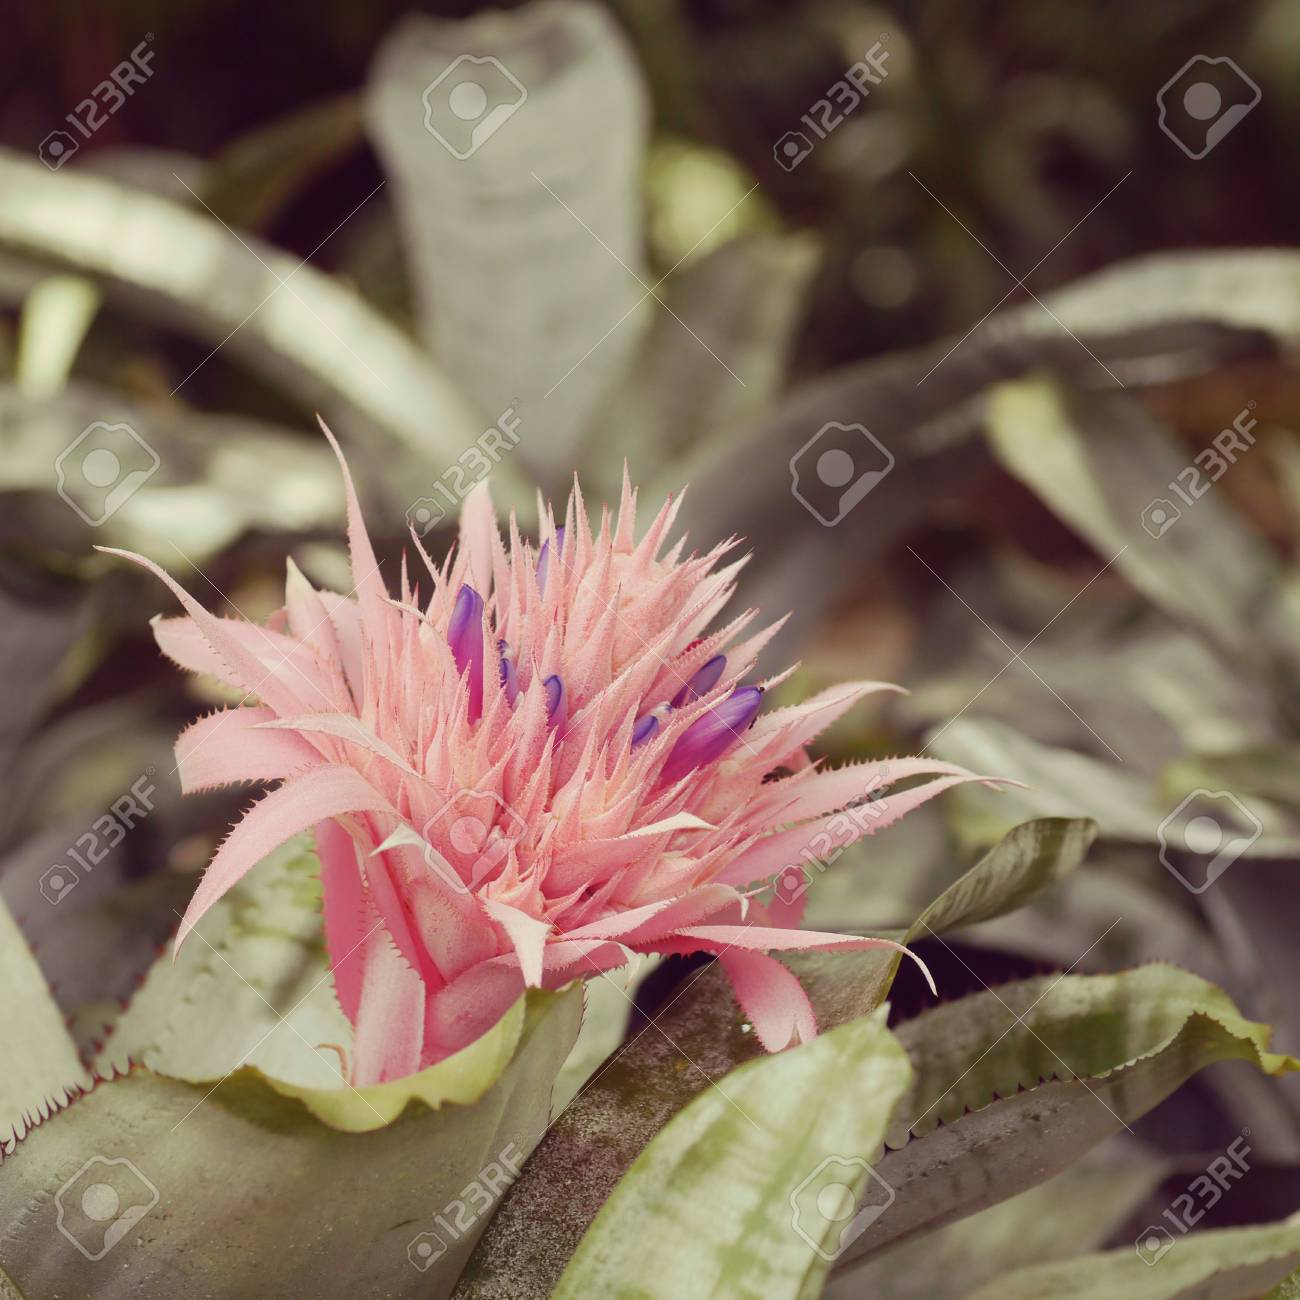 Pink Bromeliad Flower Old Retro Vintage Style Stock Photo Picture